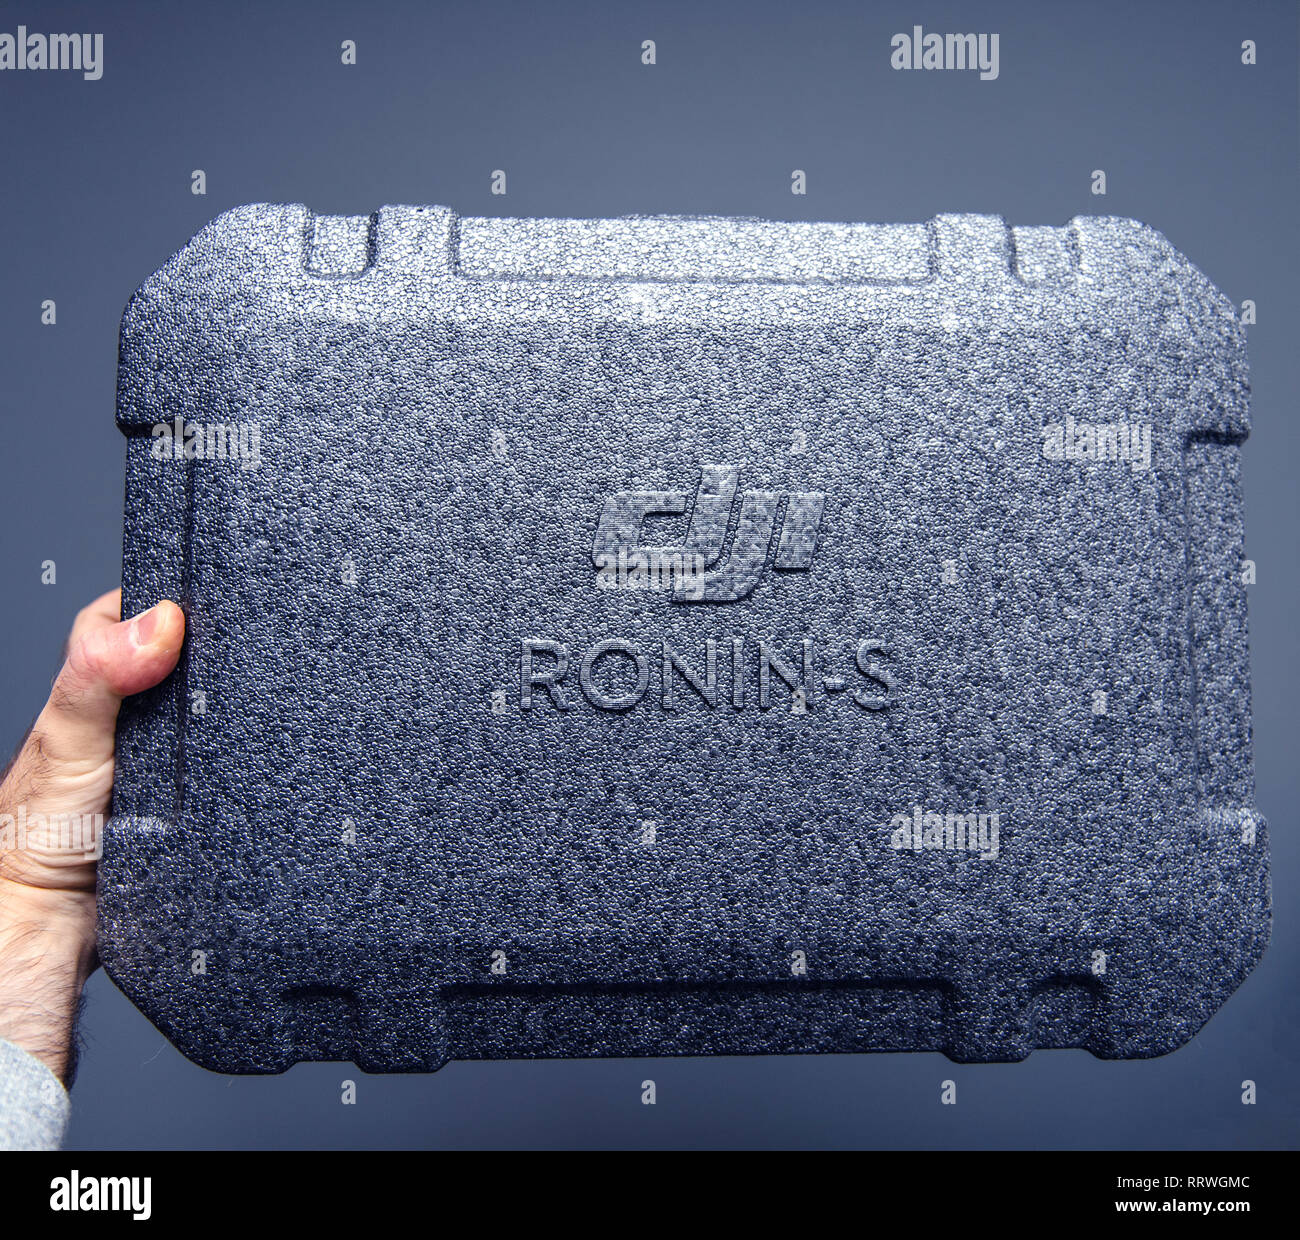 PARIS, FRANCE - NOV 22, 2018: Man hand holding against gray studio background new DJI Ronin S superior 3-axis stabilization system for DSLR and mirrorless camera packaging box - Stock Image